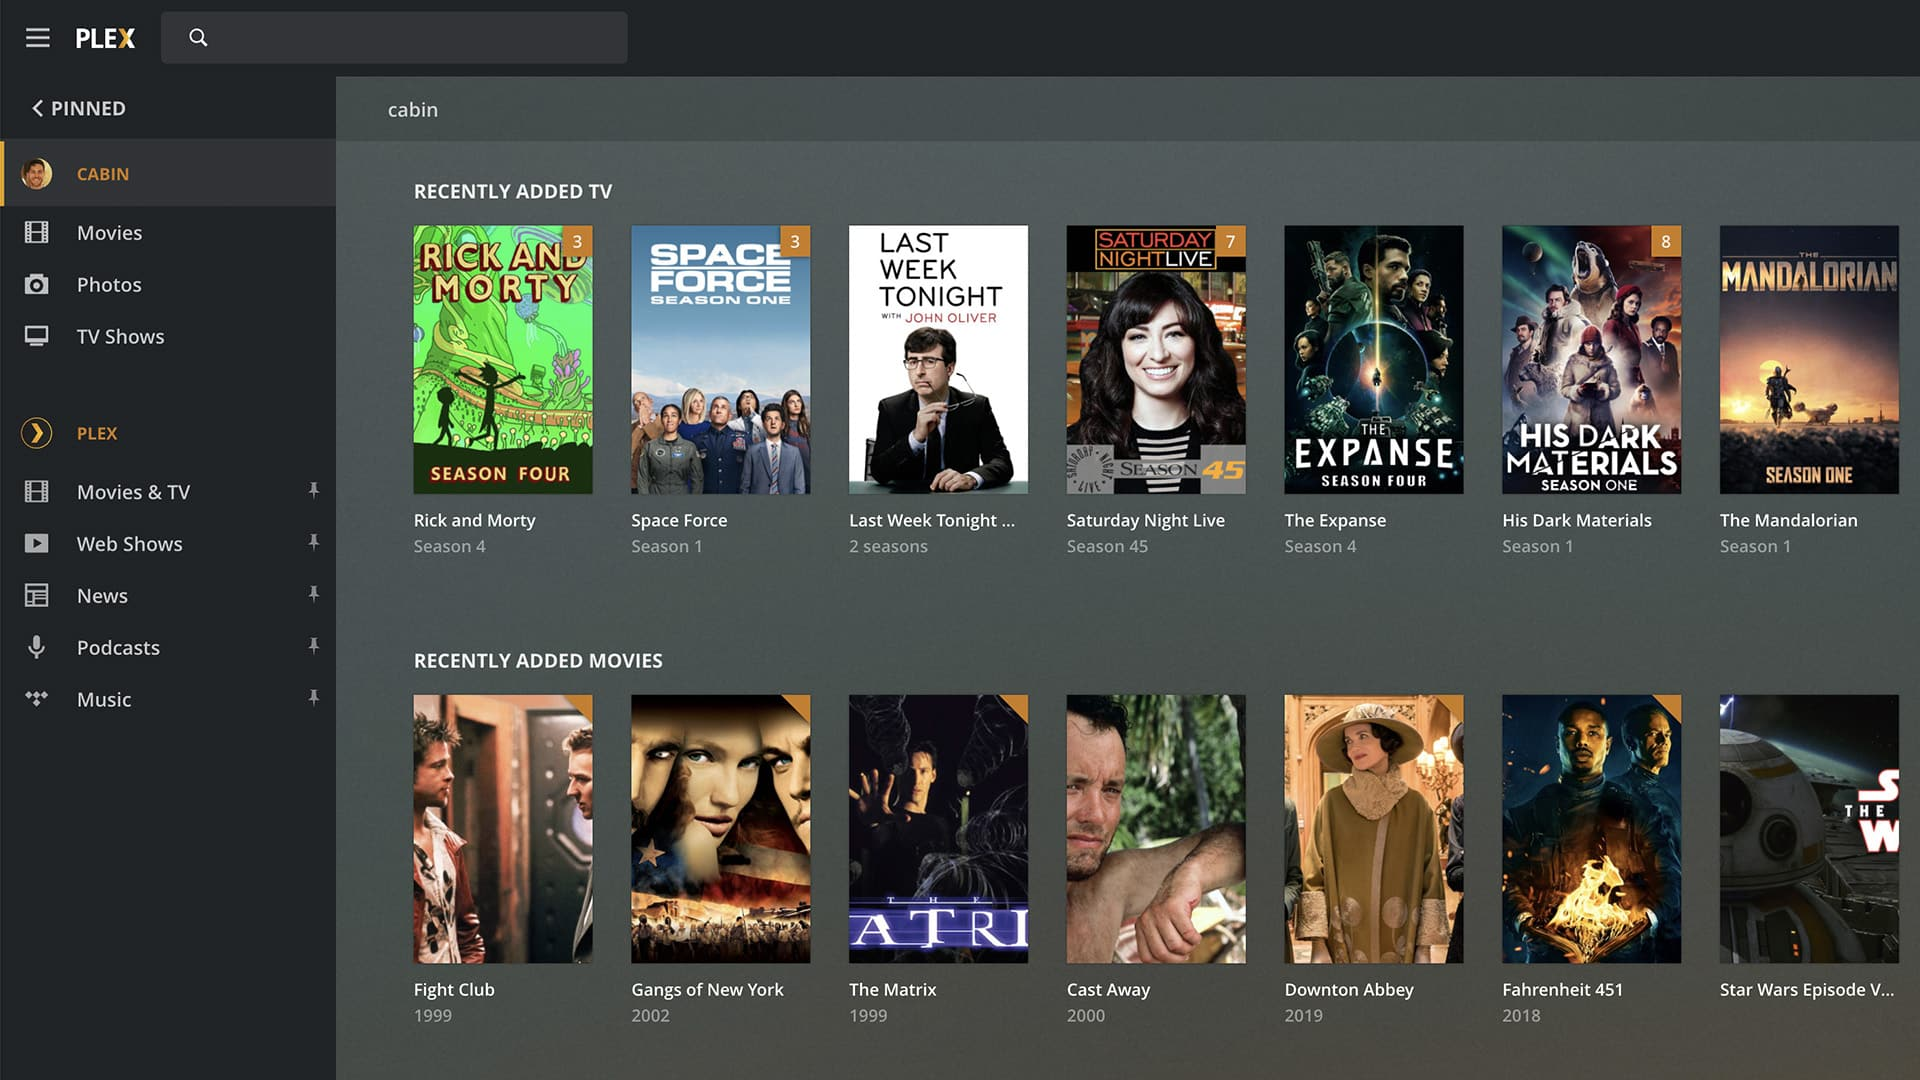 FreeNAS Plex UI for browsing movies and tvs downloaded at night